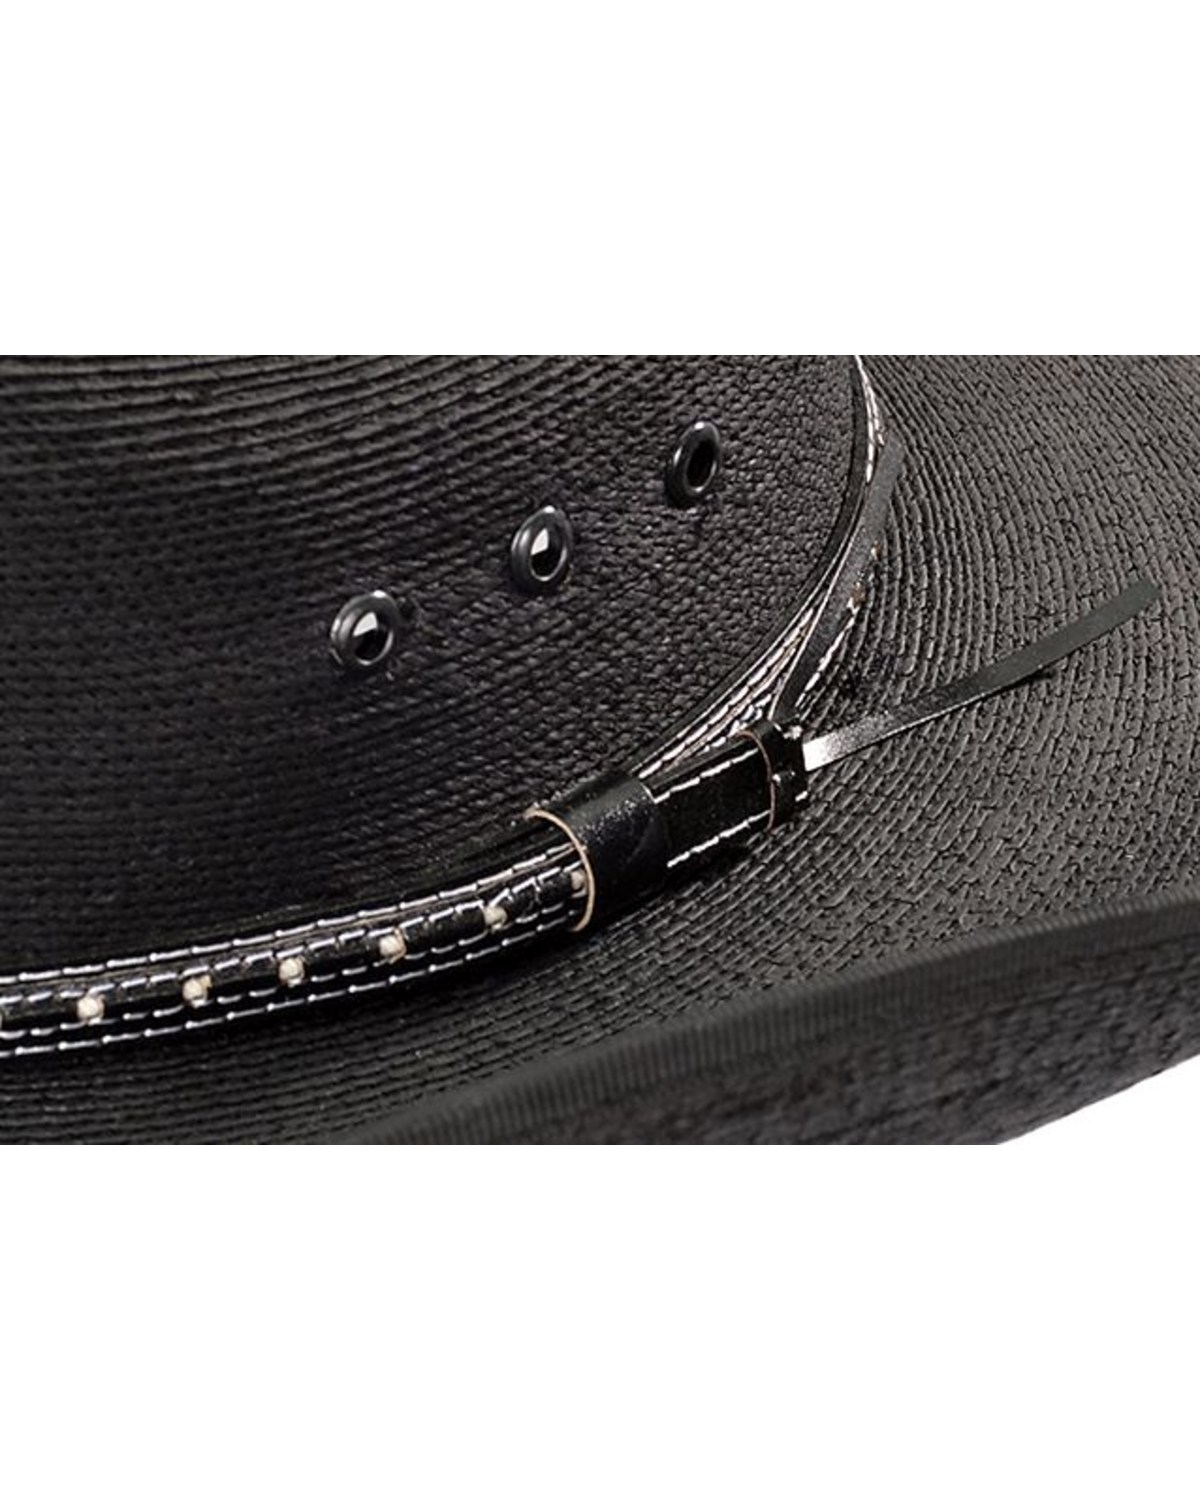 8aaba16504425 Bullhide Men s Country Strong Straw Hat